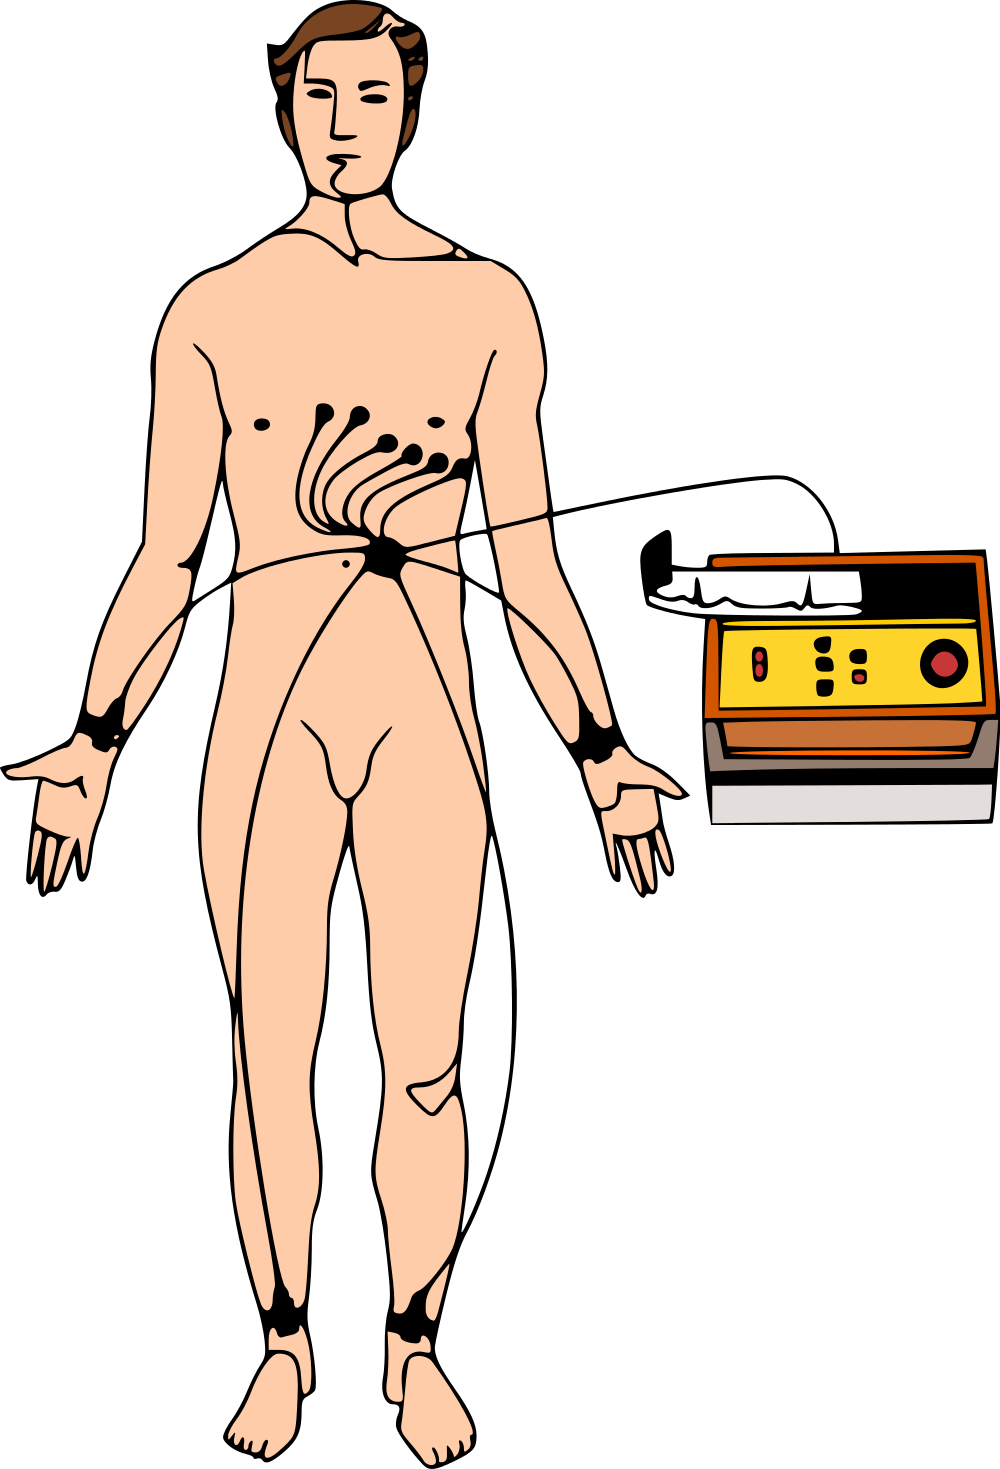 Place Electrodes and Play!